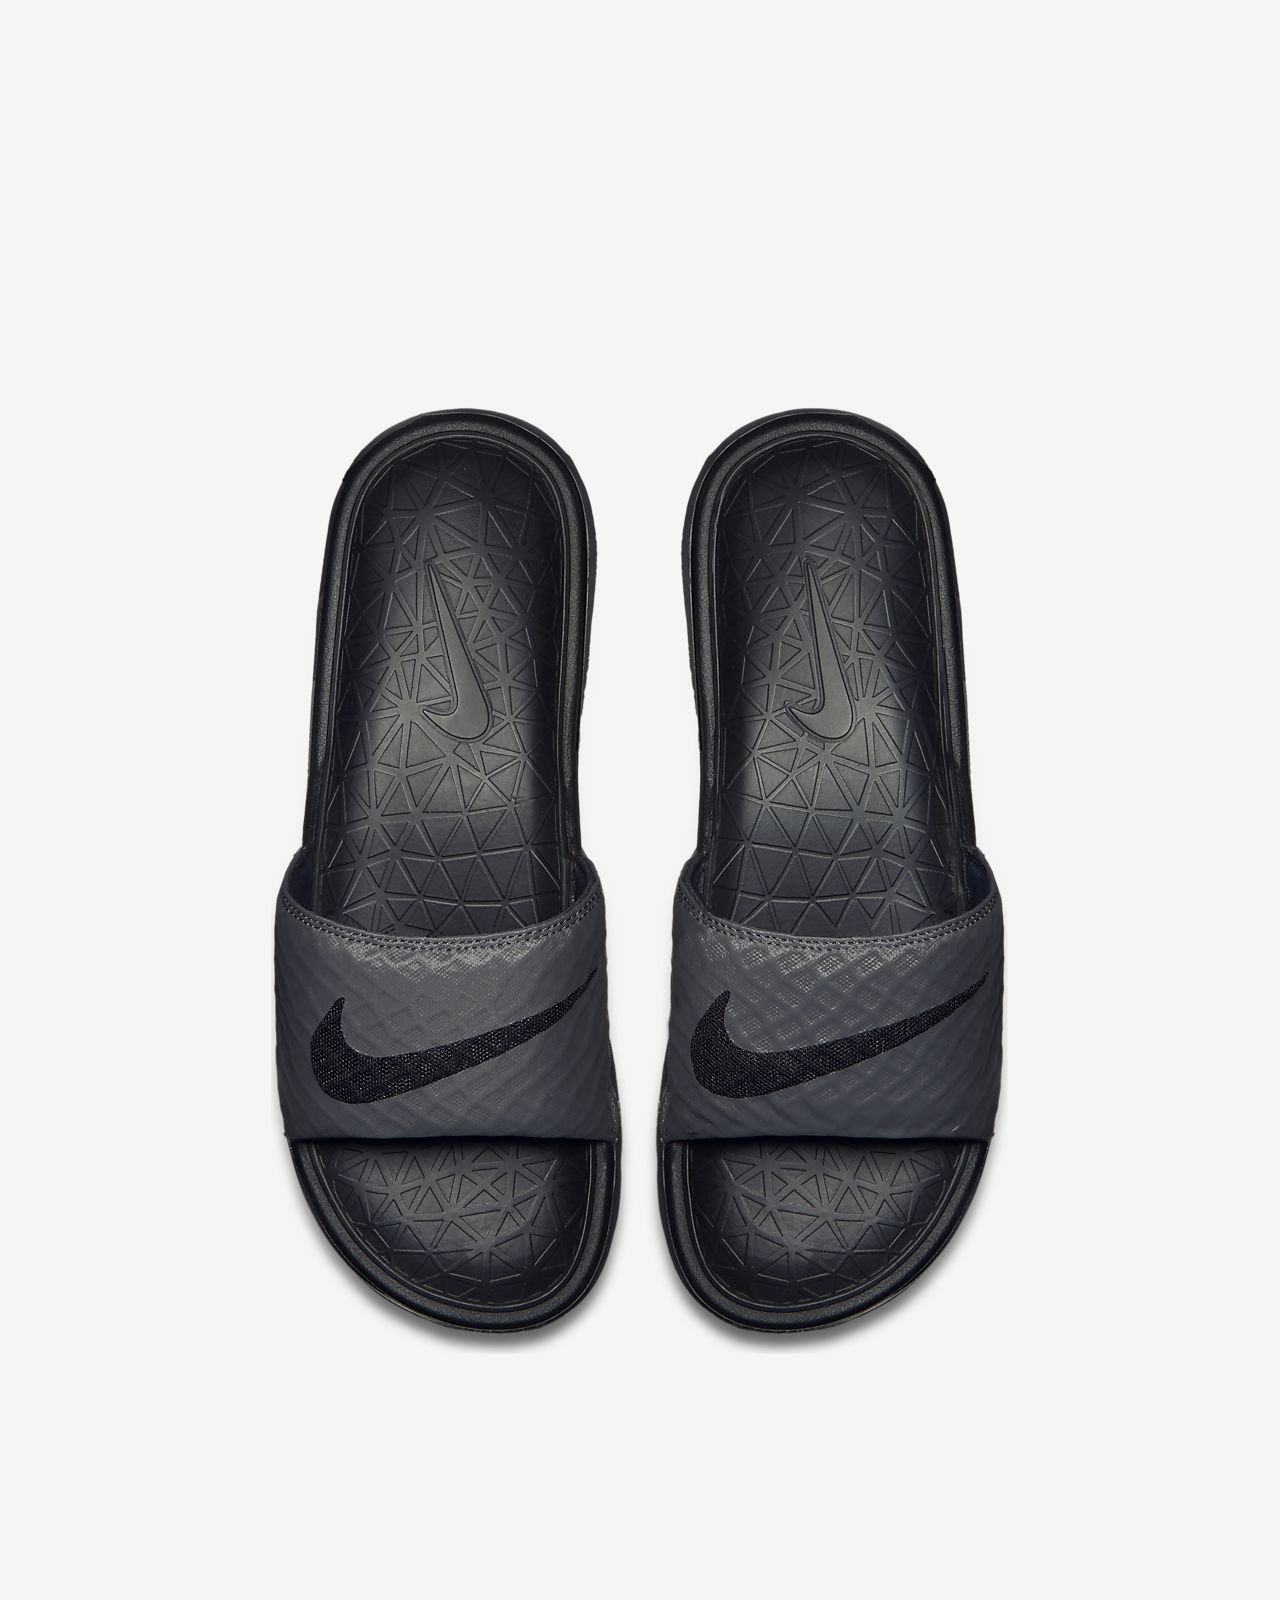 c217d74b0e5 Low Resolution Nike Benassi Solarsoft 2 herenslipper Nike Benassi Solarsoft  2 herenslipper